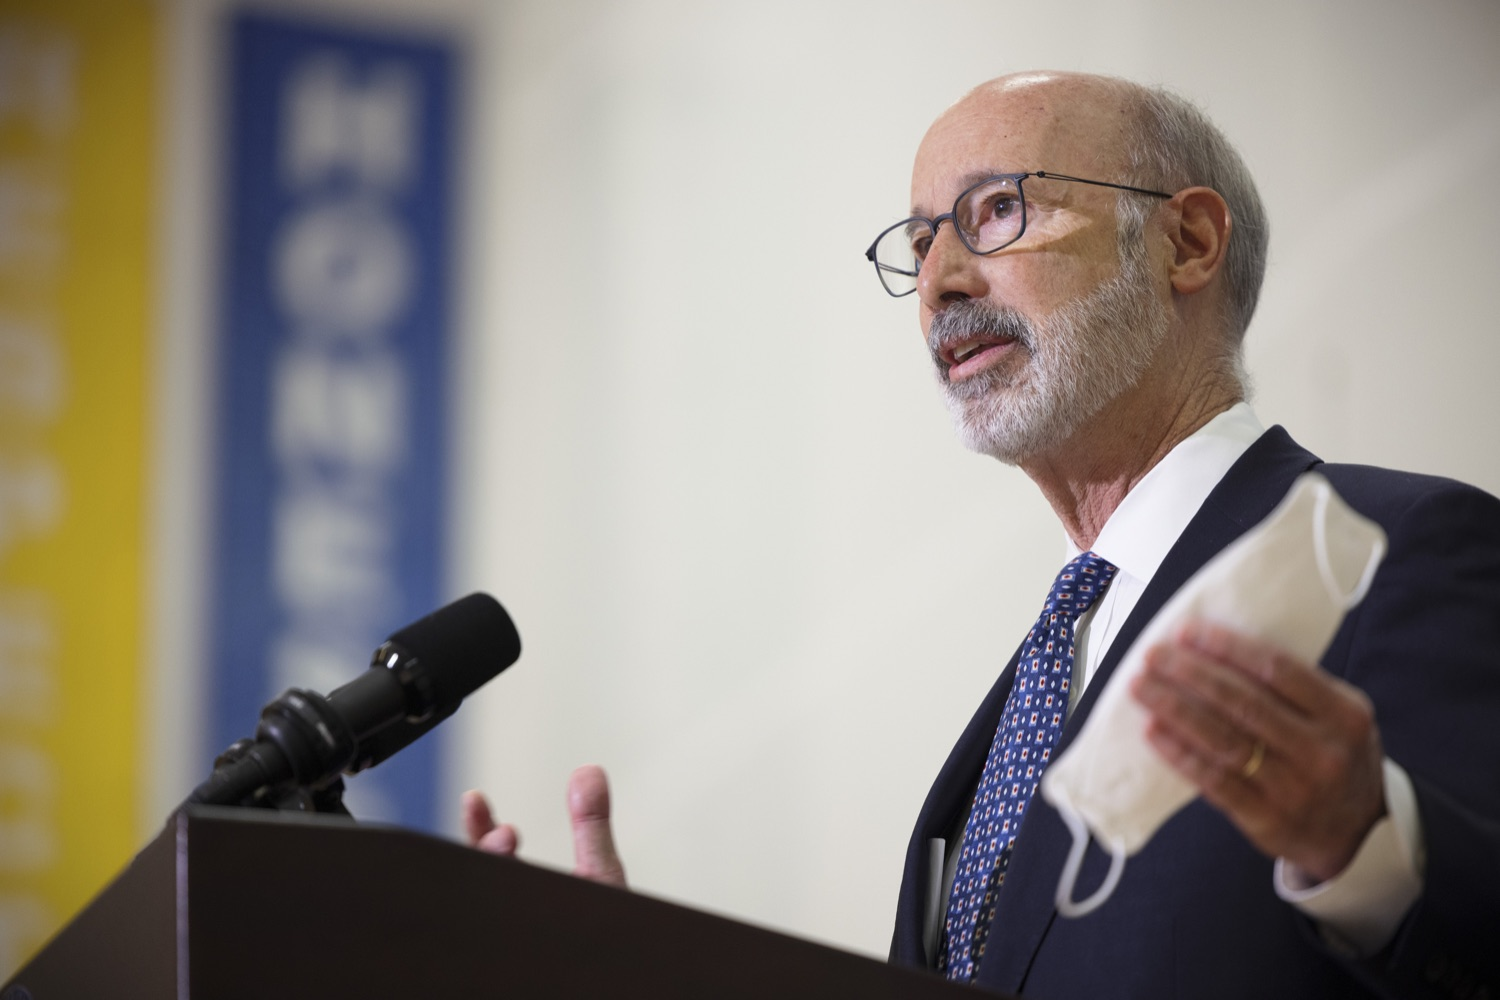 """<a href=""""https://filesource.wostreaming.net/commonwealthofpa/photo/20078_gov_gunviolence_dz_006.jpg"""" target=""""_blank"""">⇣Download Photo<br></a>Pennsylvania Governor Tom Wolf speaking with the press.  Governor Tom Wolf today joined state lawmakers to remind communities and organizations that $24 million in state funding is available to address community violence.  Philadelphia, PA - September 23, 2021"""